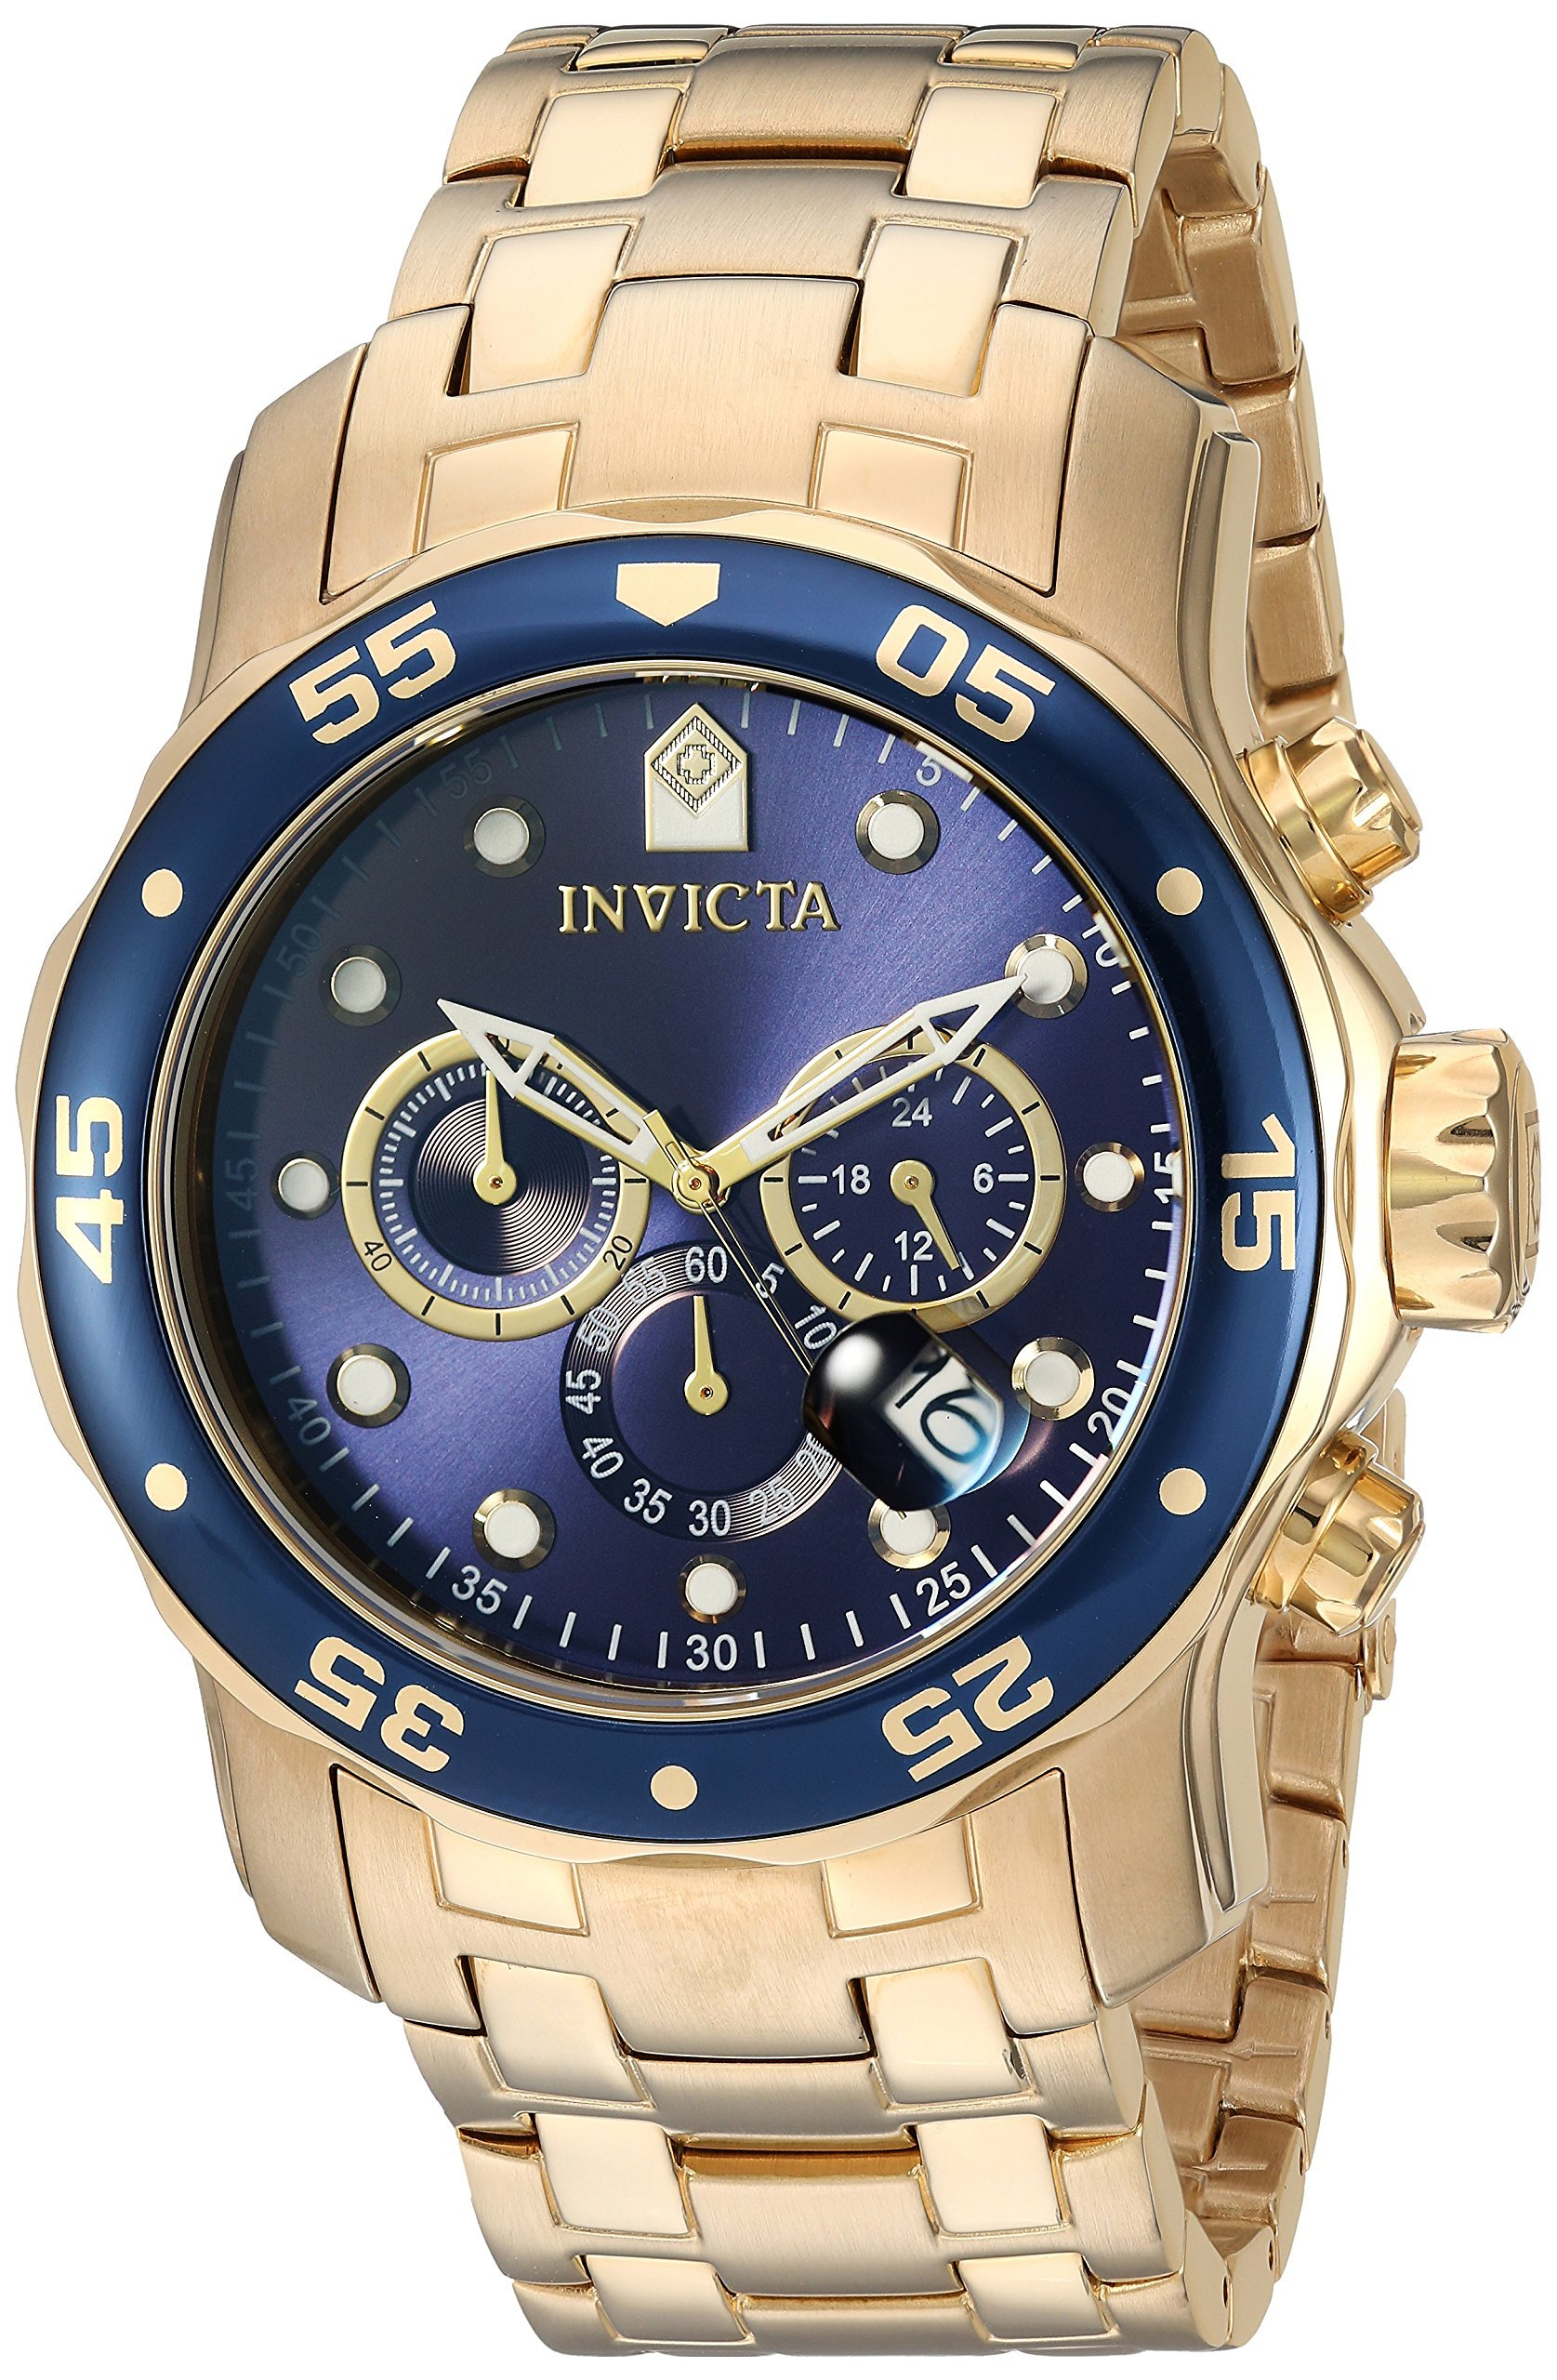 Invicta Men's 0073 Pro Diver Collection Chronograph 18k Gold-Plated Watch with Link Bracelet by Invicta